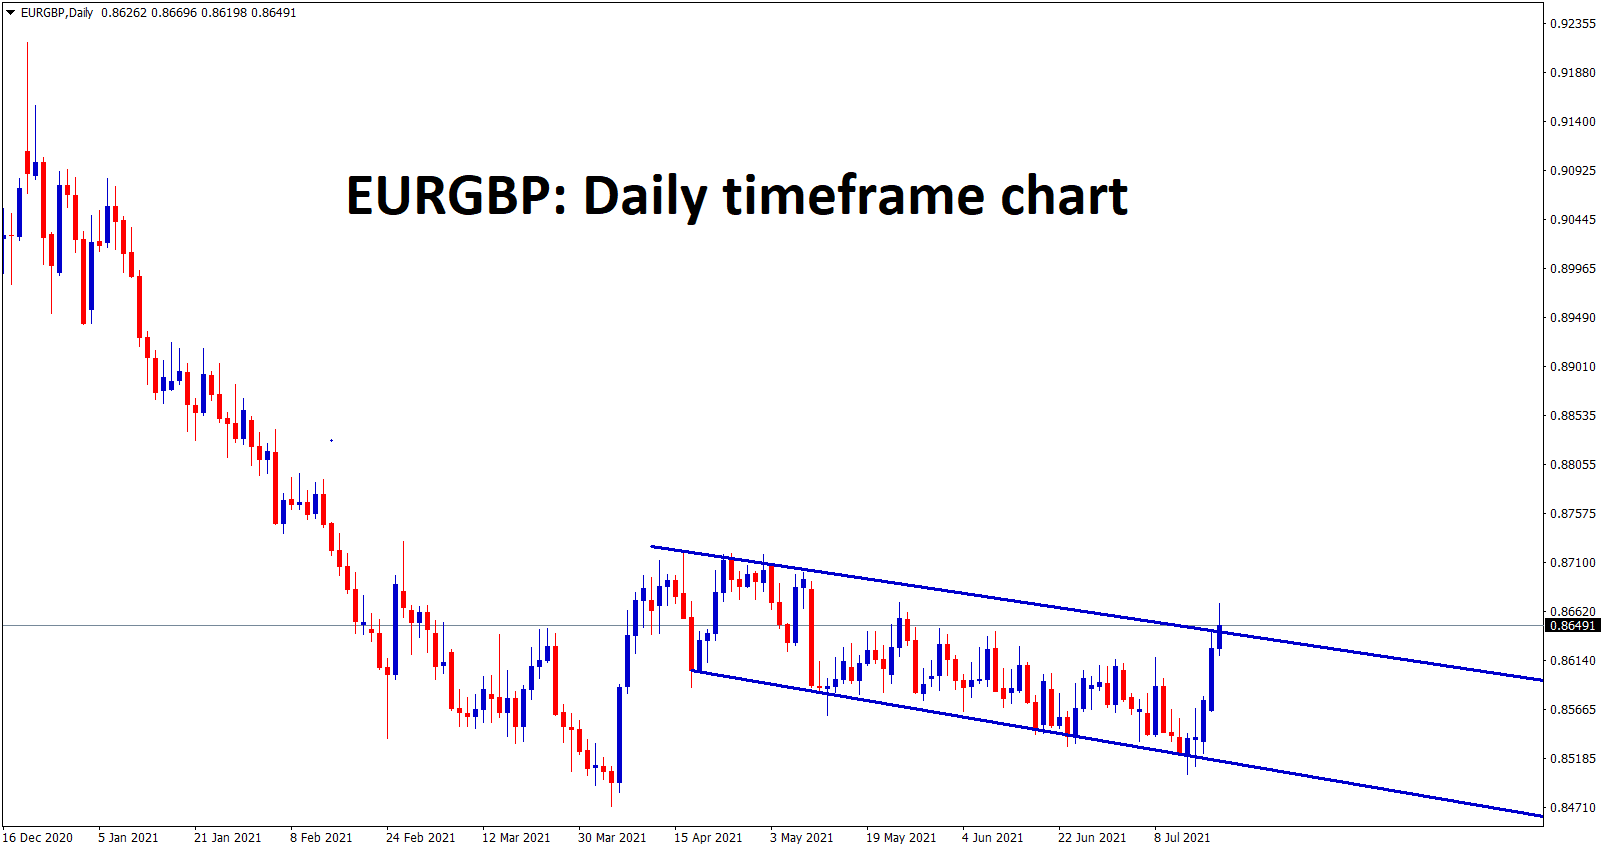 EURGBP is trying to break the range but its still in a range from a long time.